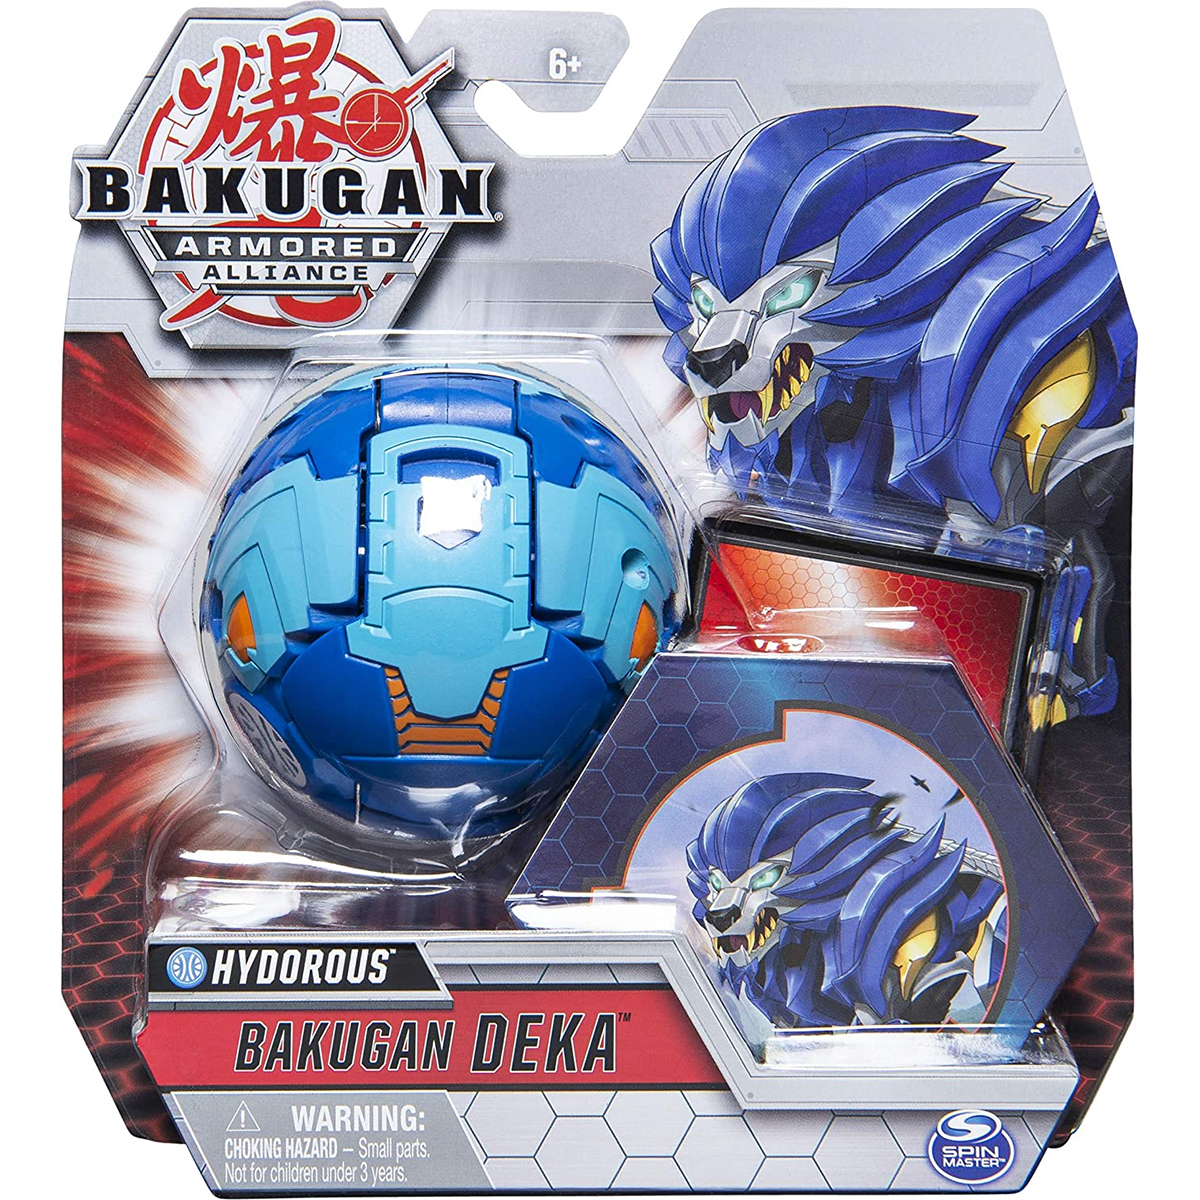 Figurina Bakugan Deka Armored Alliance, Hydorous, 20122719